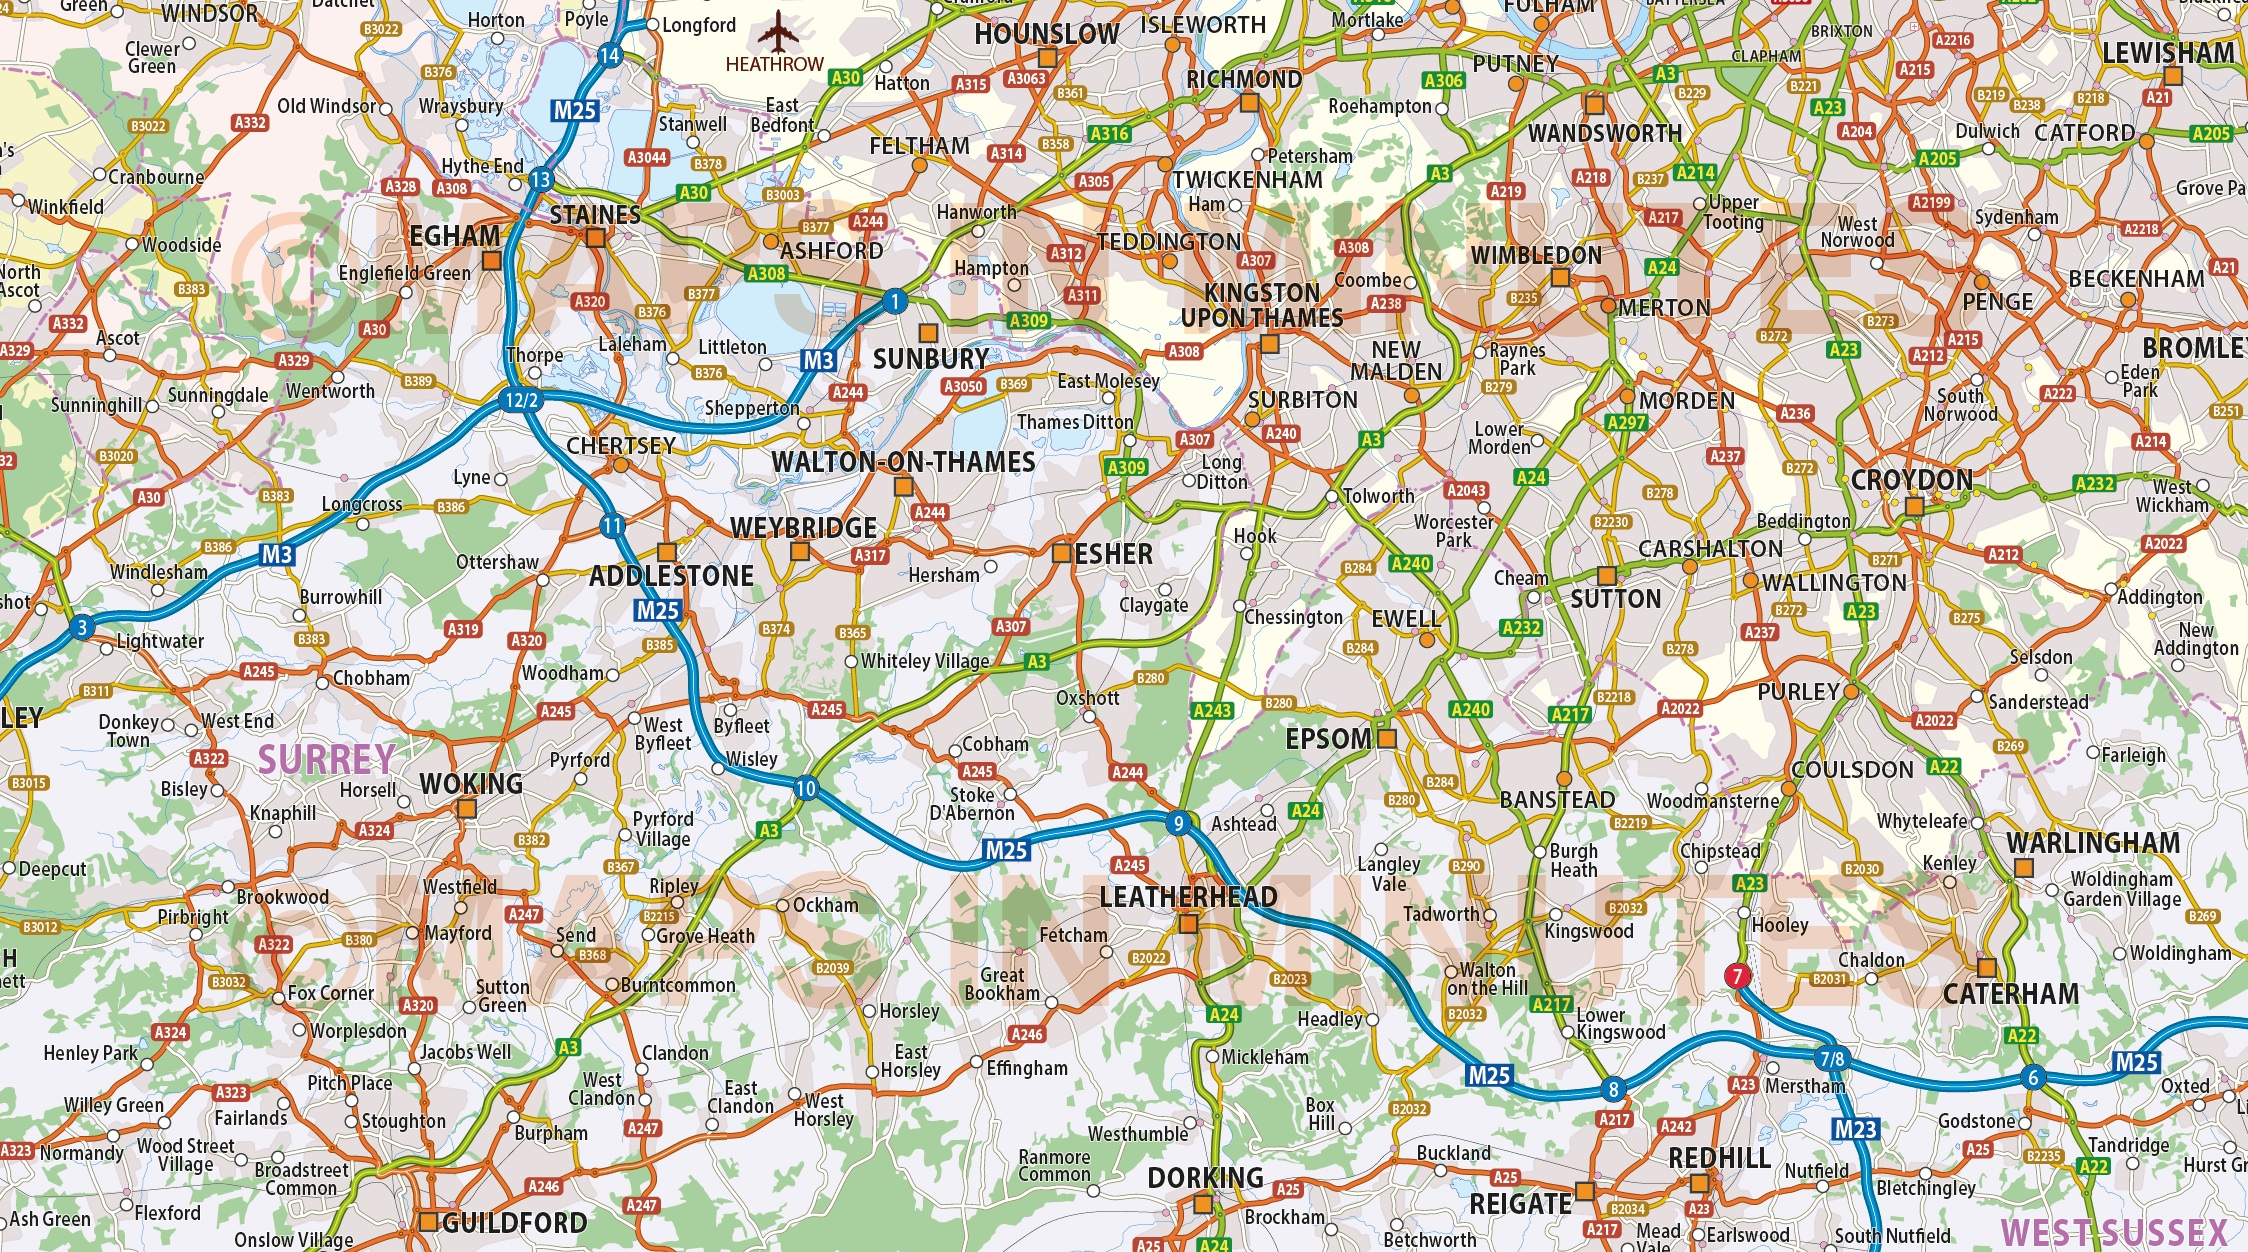 Digital vector map of Greater LondonM25 with roads 250k scale in